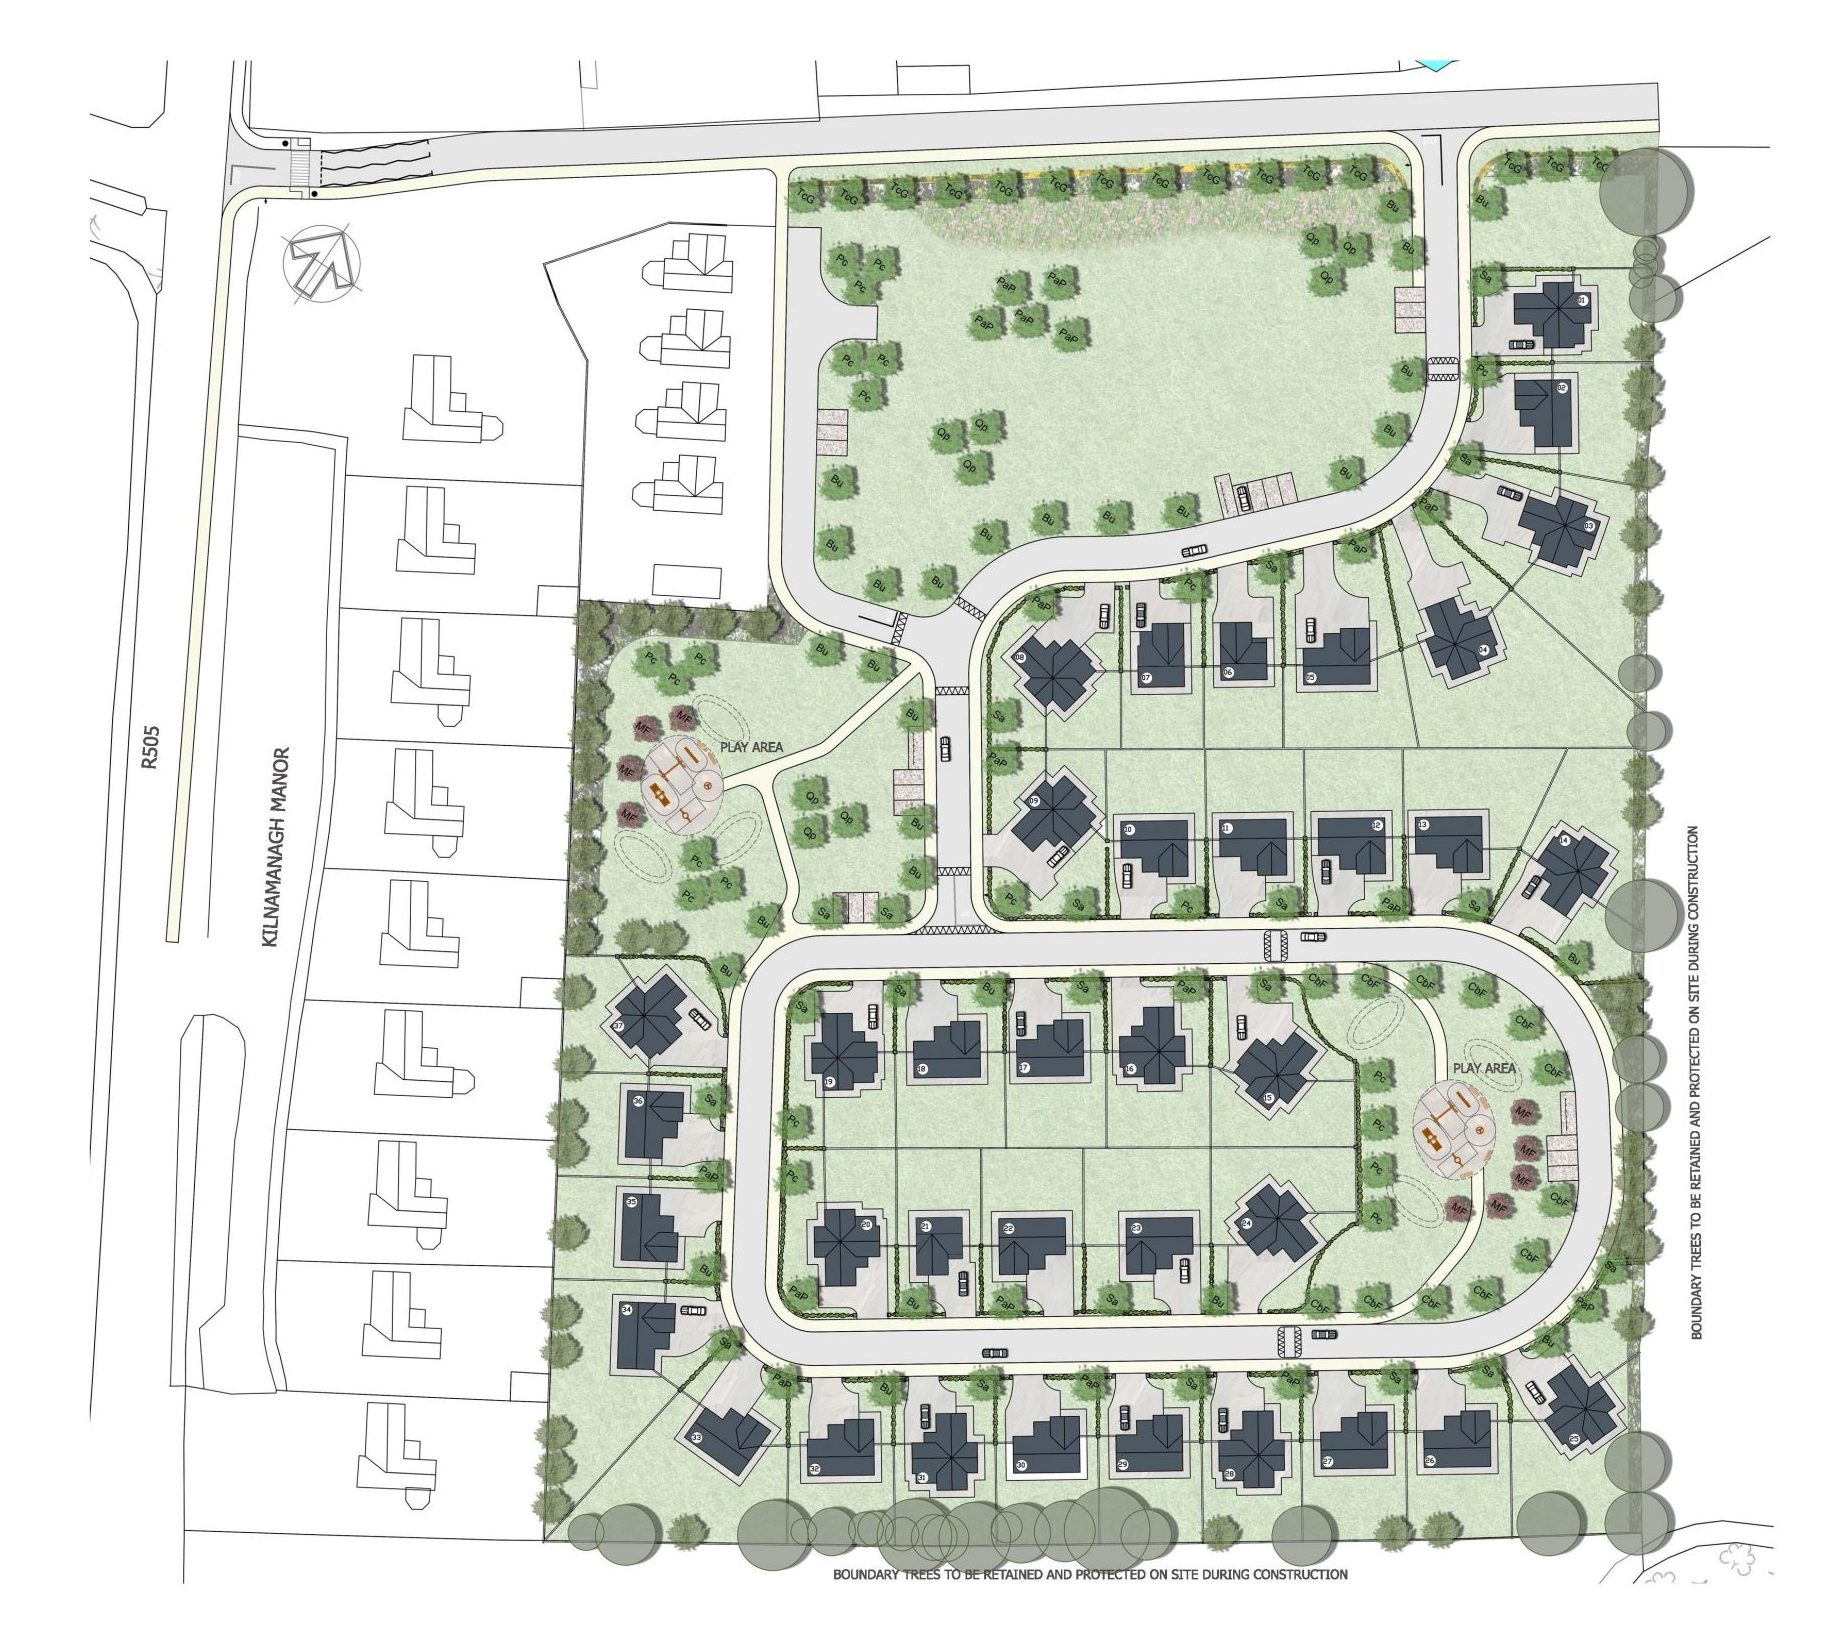 Planning Permission Granted – Dundrum, Co. Tipperary